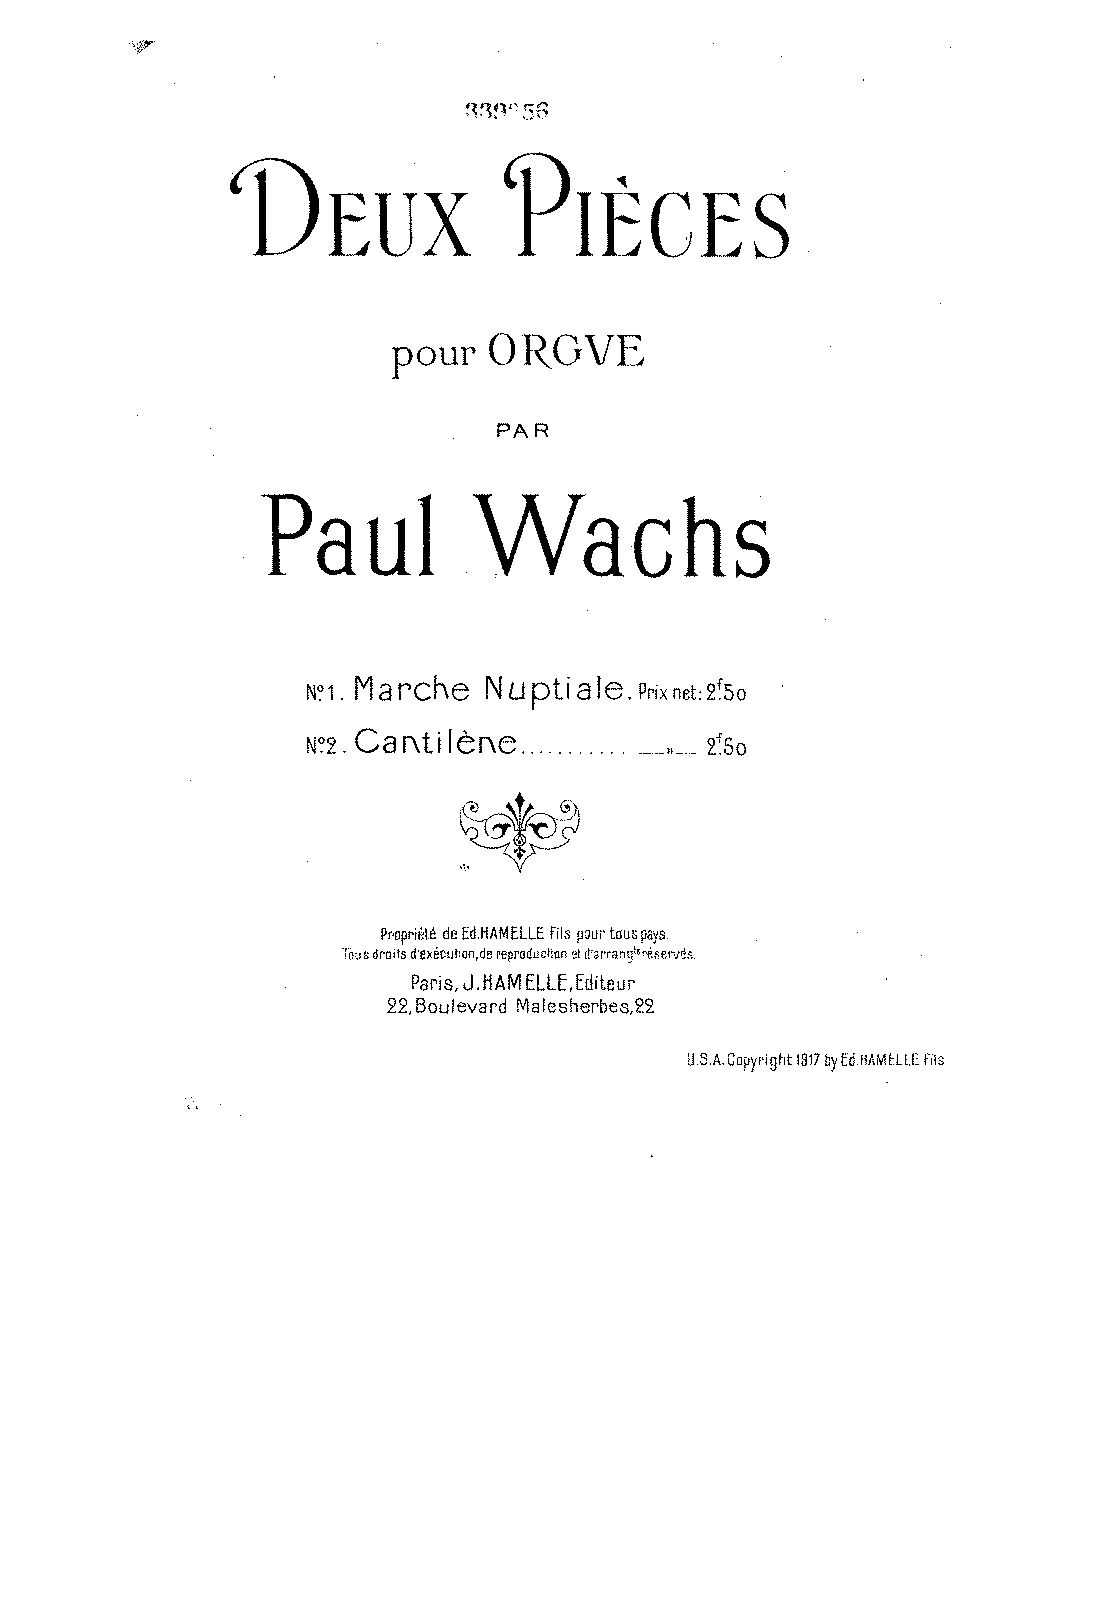 Wachs Two Pieces.pdf